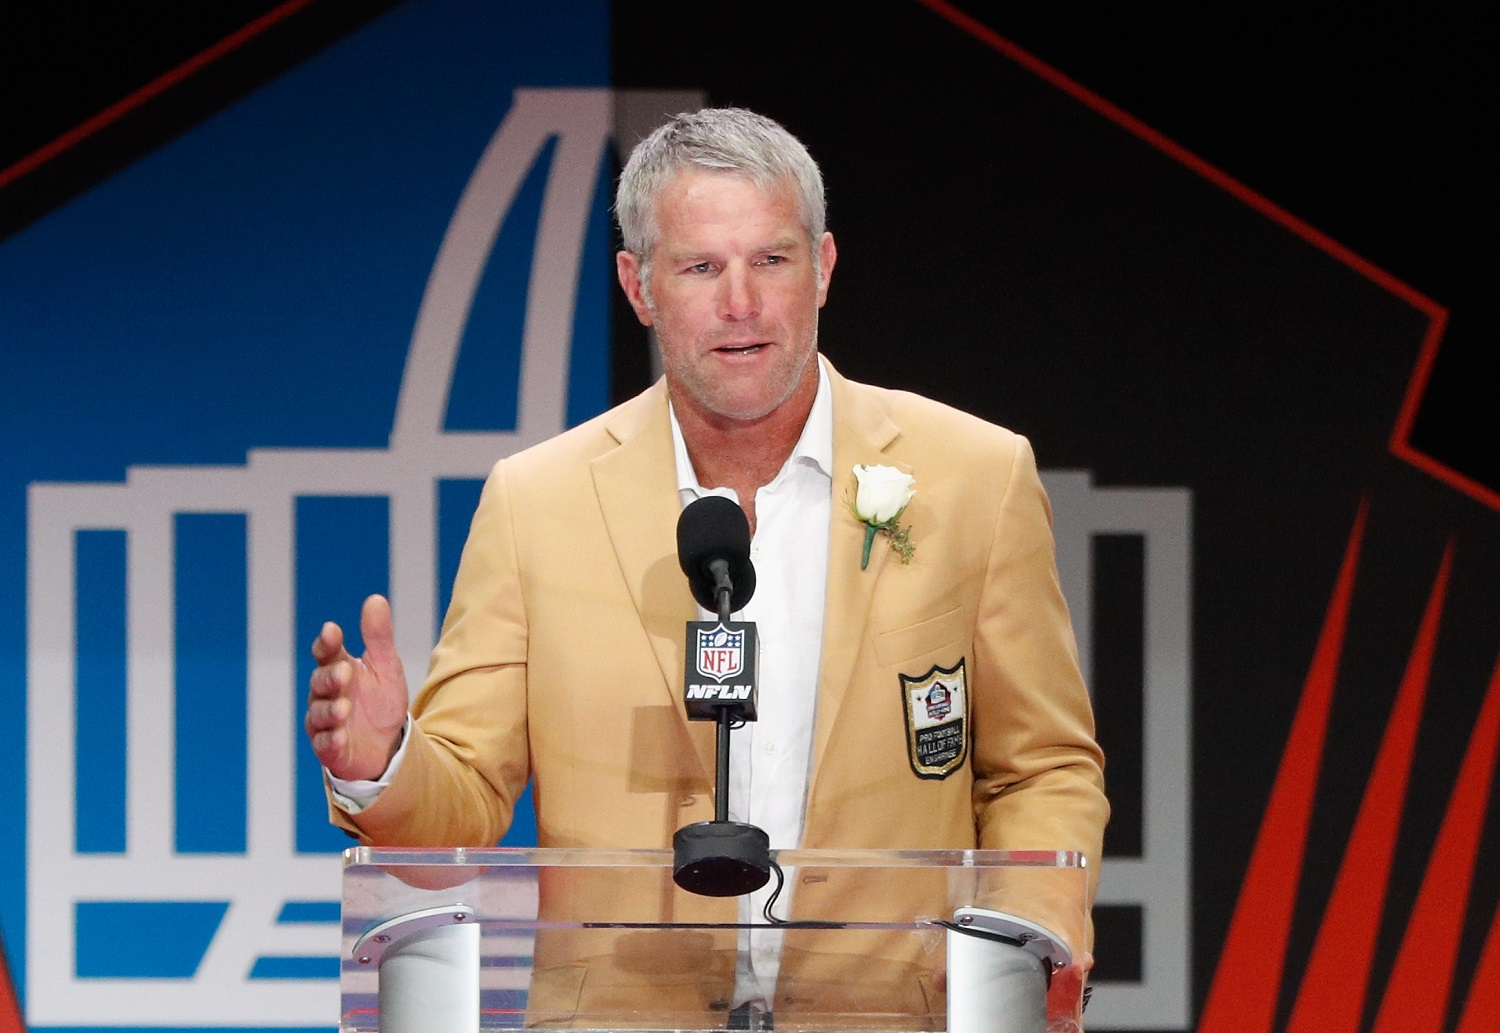 Green Bay Packers legend Brett Favre was inducted into the Pro Football Hall of Fame in 2016.